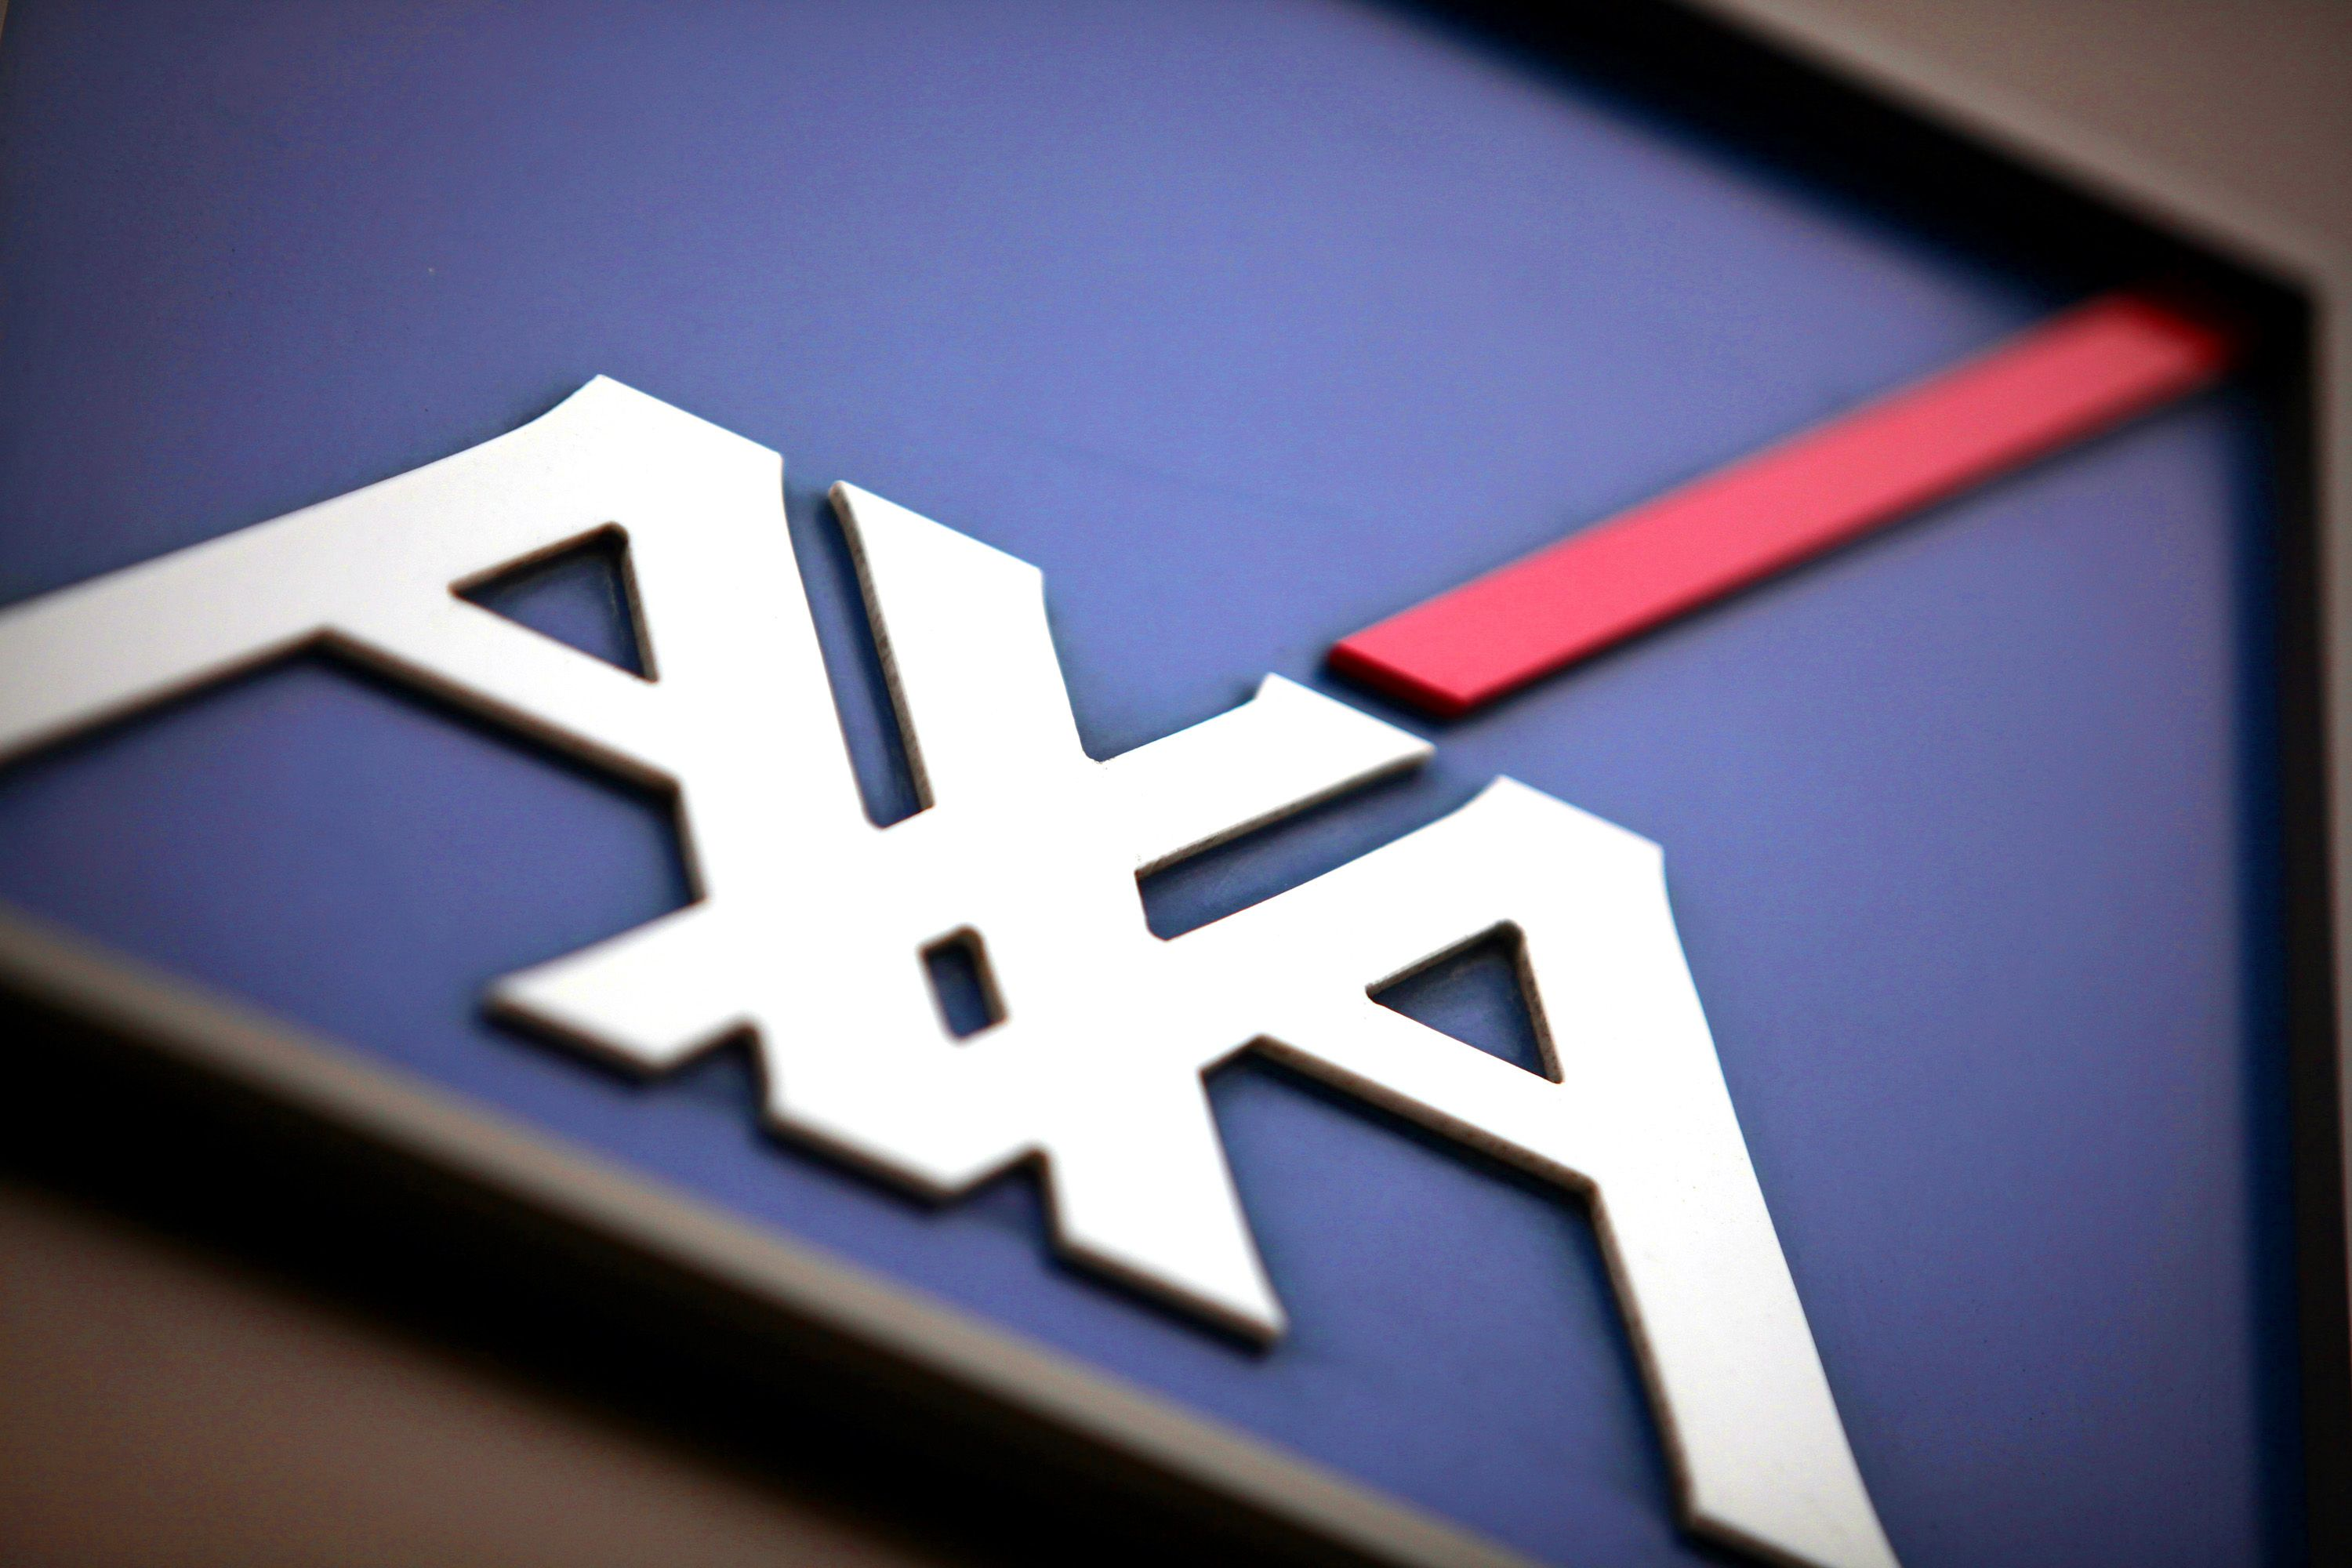 Axa Considers Sale Of Singapore Business As It Seeks To Raise Funds Sources